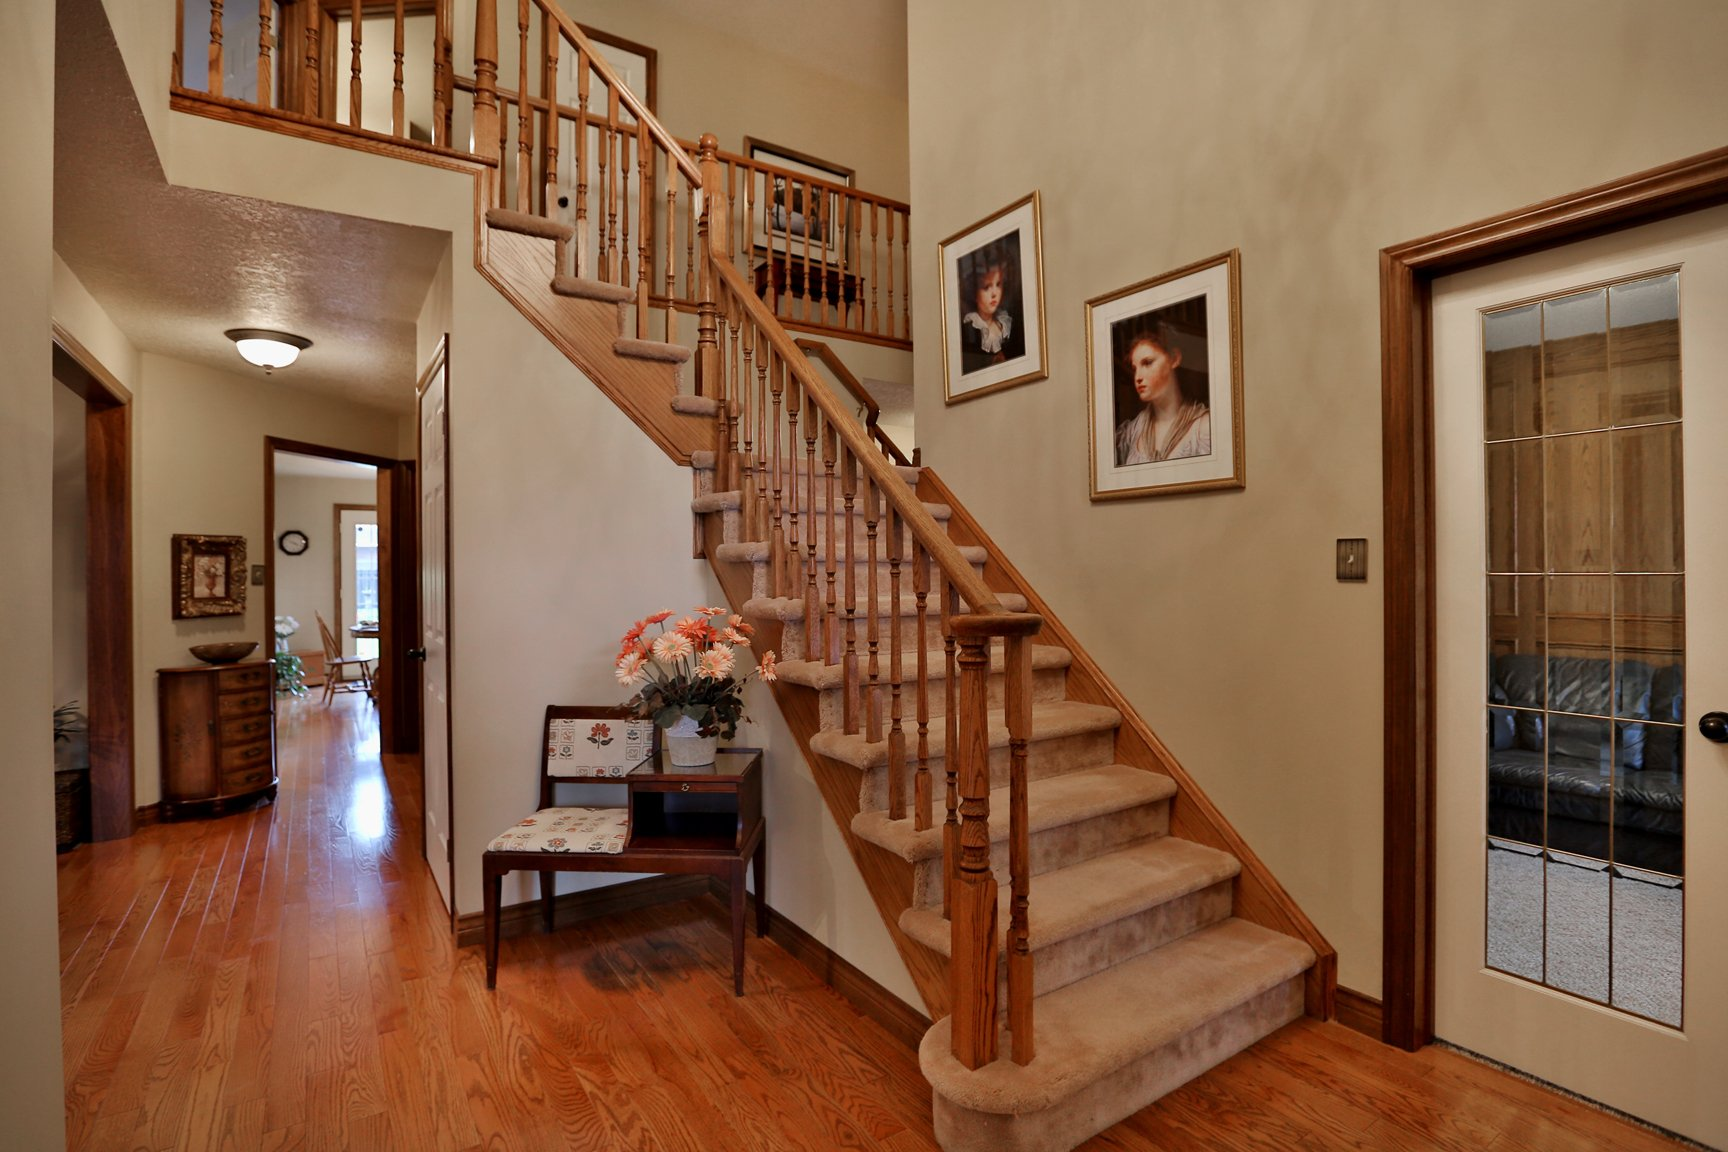 85 Galley right staircase - Recently SOLD in Ancaster